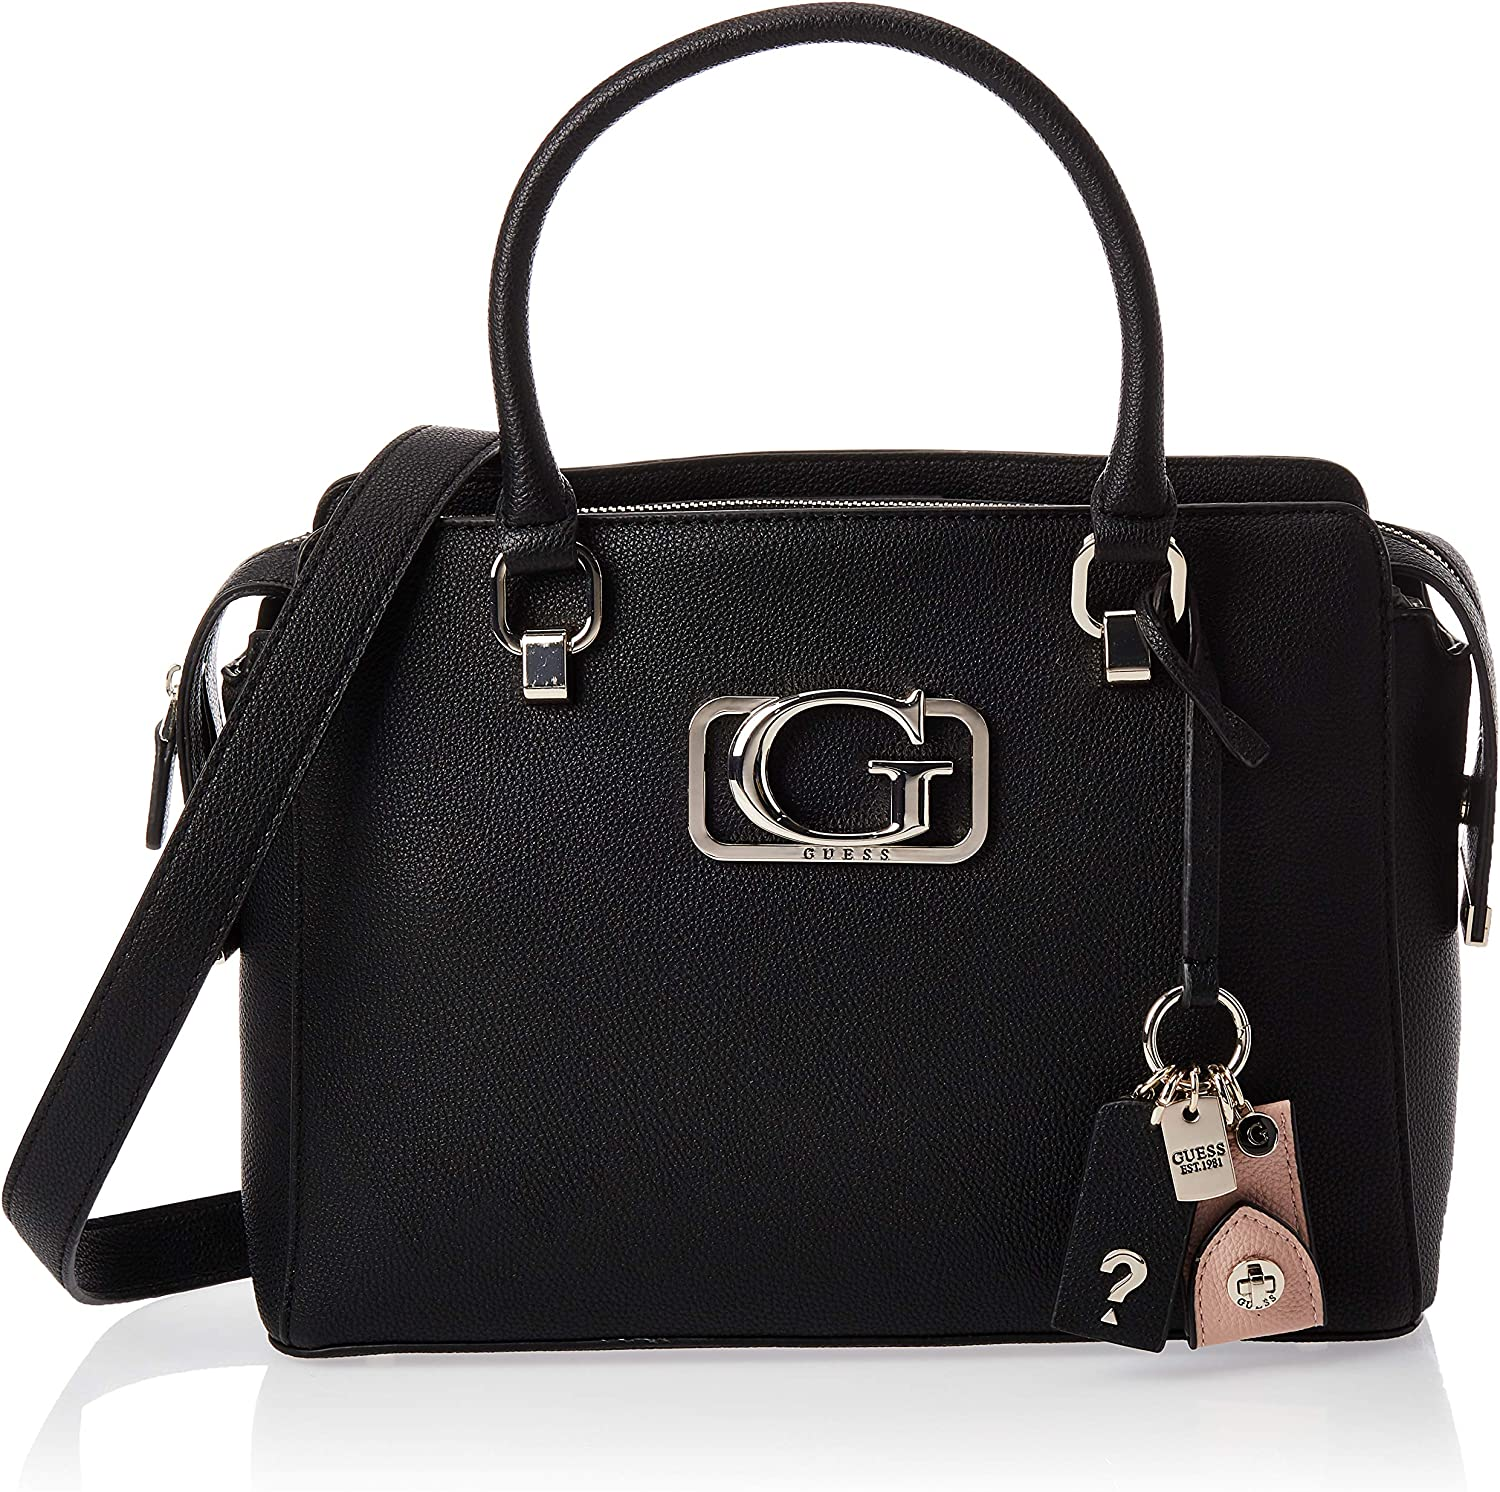 Guess Women's Annarita Girlfriend Satchel Top-Handle Bag Black